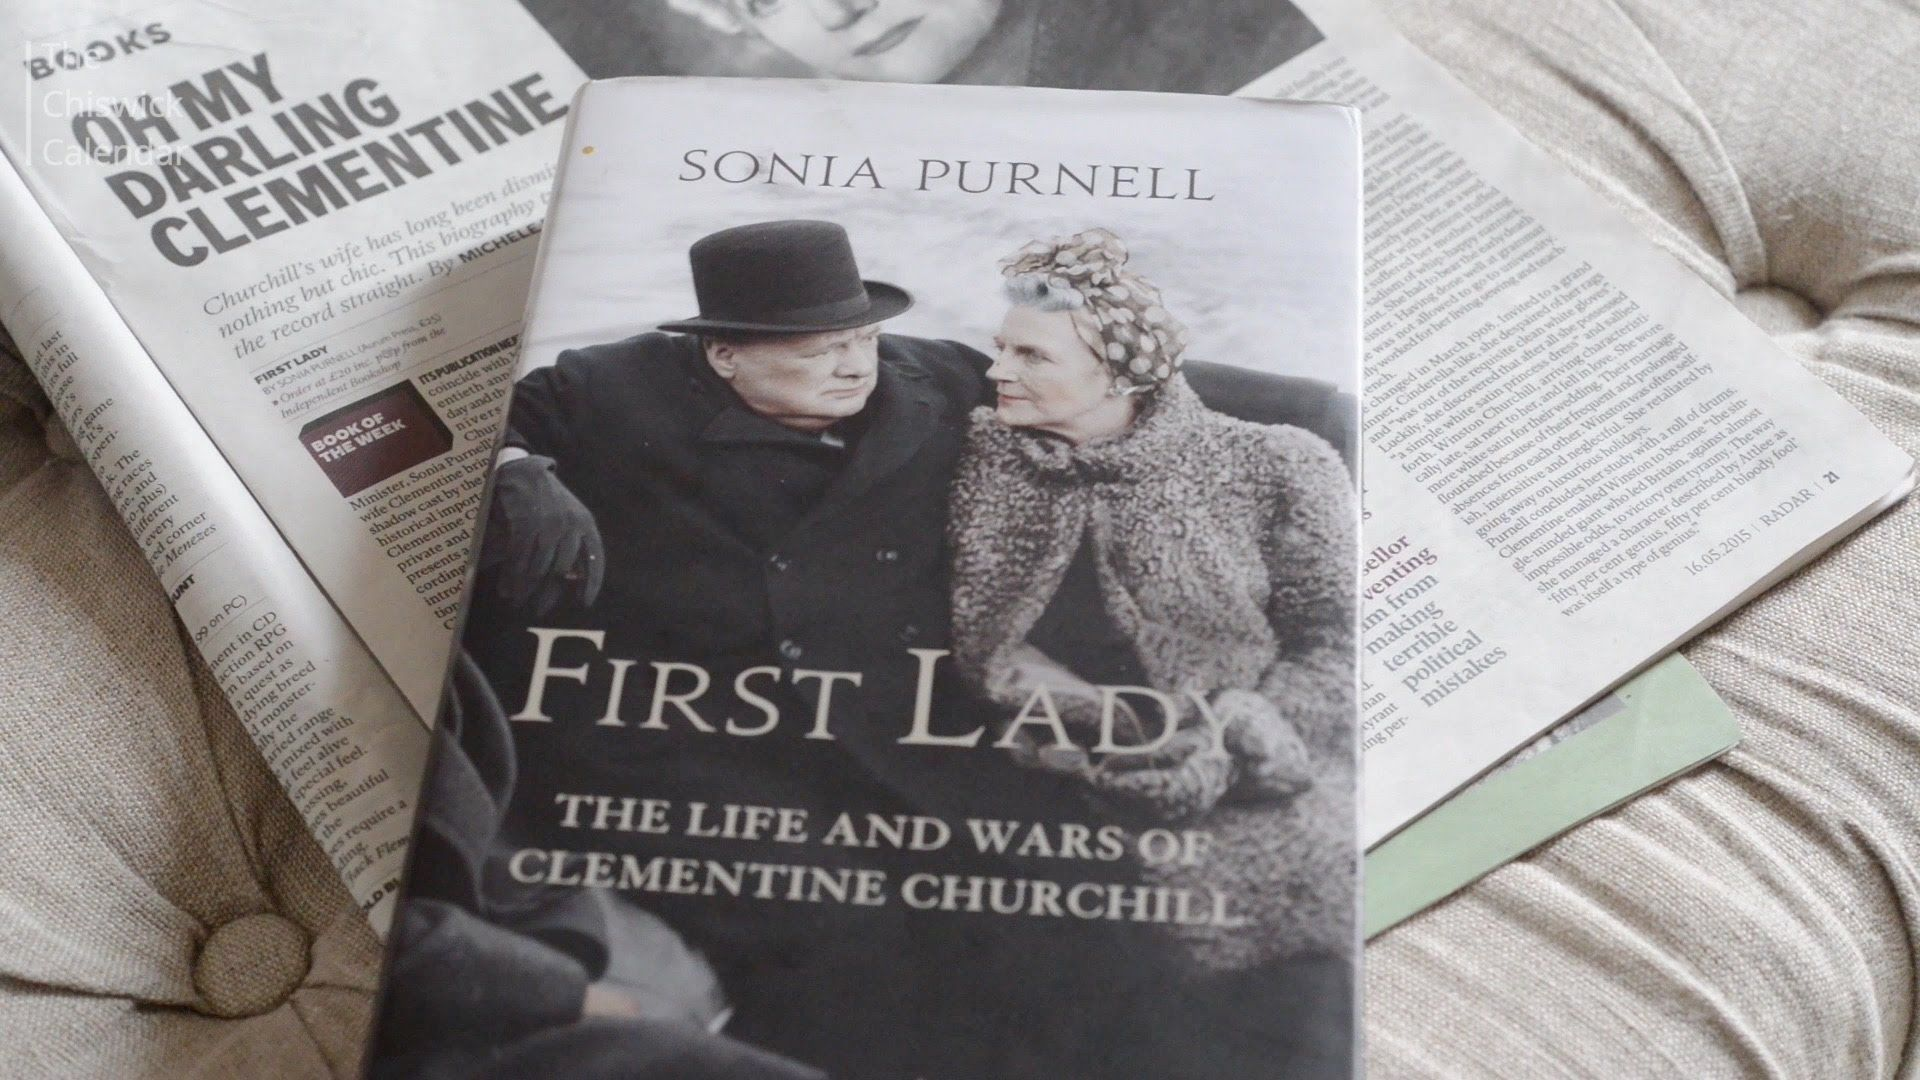 First Lady: The Life and Wars of Clementine Churchill by